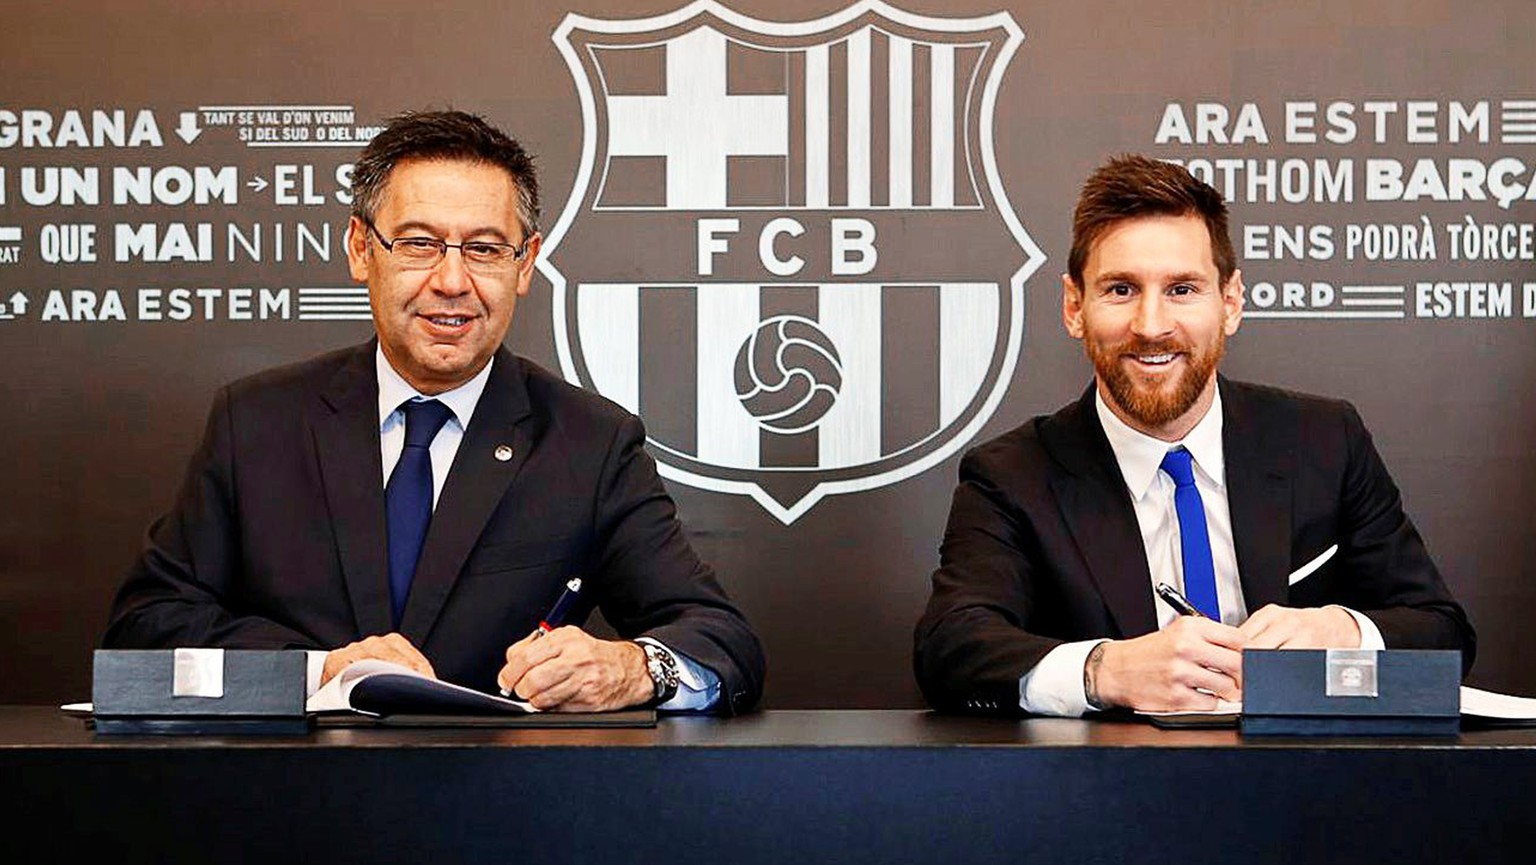 epa06349647 A handout photo made available by Spanish Primera Division soccer club FC Barcelona of Argentine striker Lionel Messi (R) signing his new contract next to Barcelona's president Josep Maria Bartomeu (L) in Barcelona, Spain, 25 Novemebr 2017. Messi has signed a new contract with FC Barcelona until June 2021.  EPA/DAVID SAURA HANDOUT  HANDOUT EDITORIAL USE ONLY/NO SALES